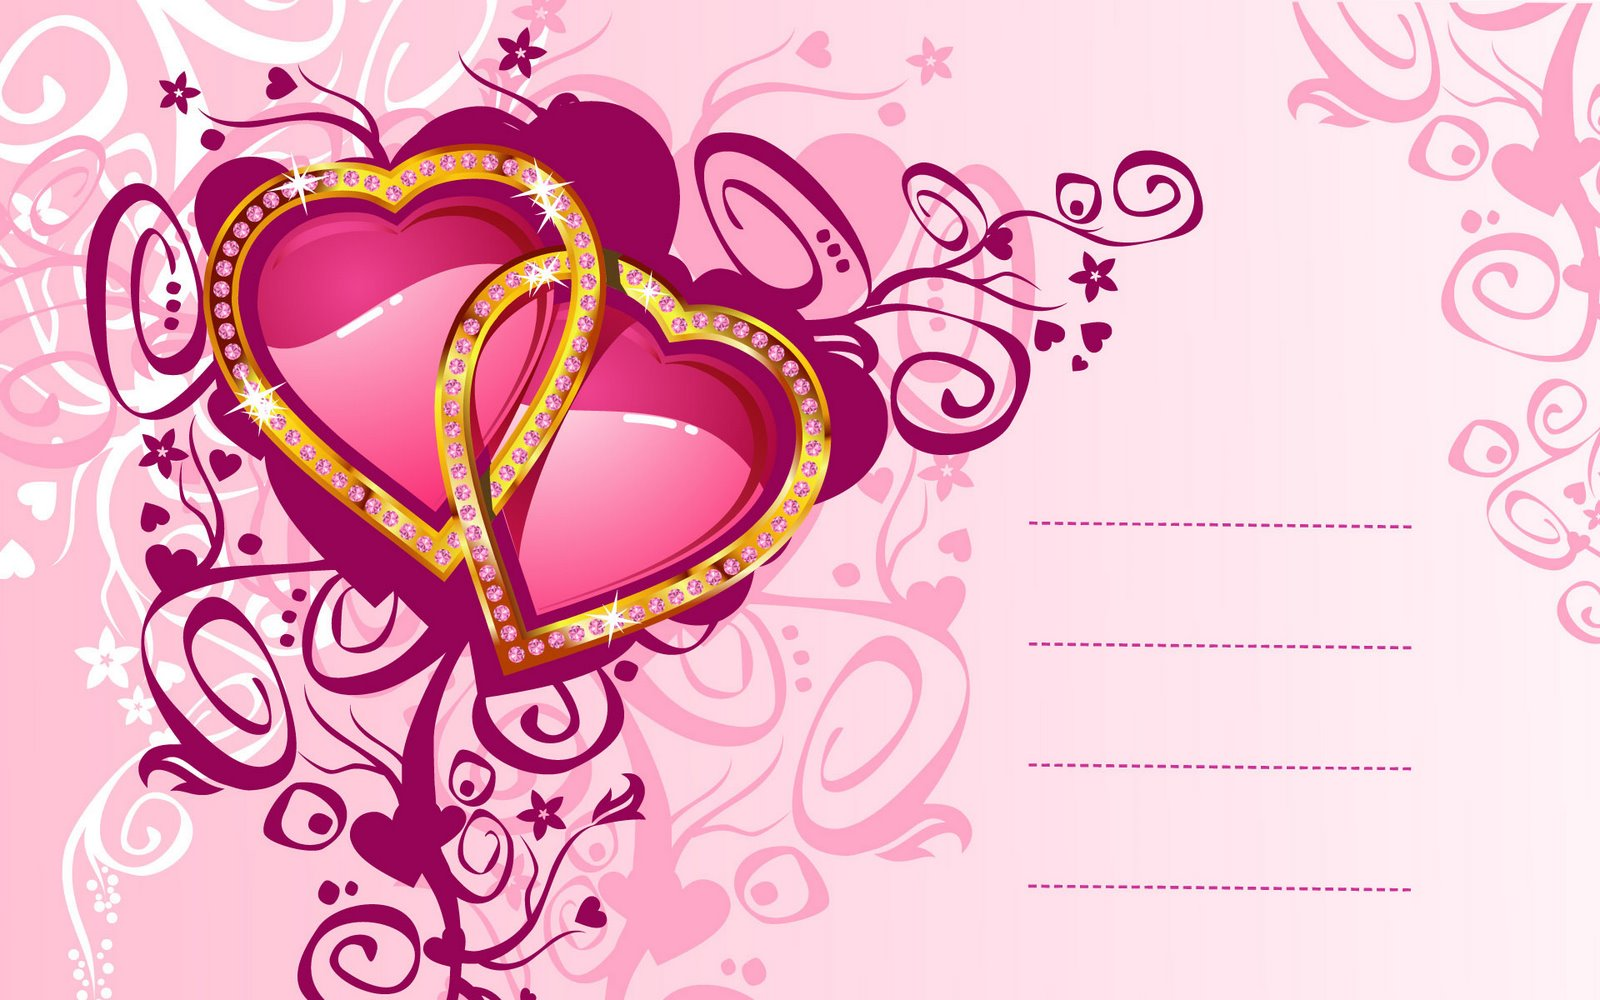 Free Cute Love Wallpapers: Love Guru: Love Wallpapers,Cute Images,Pics